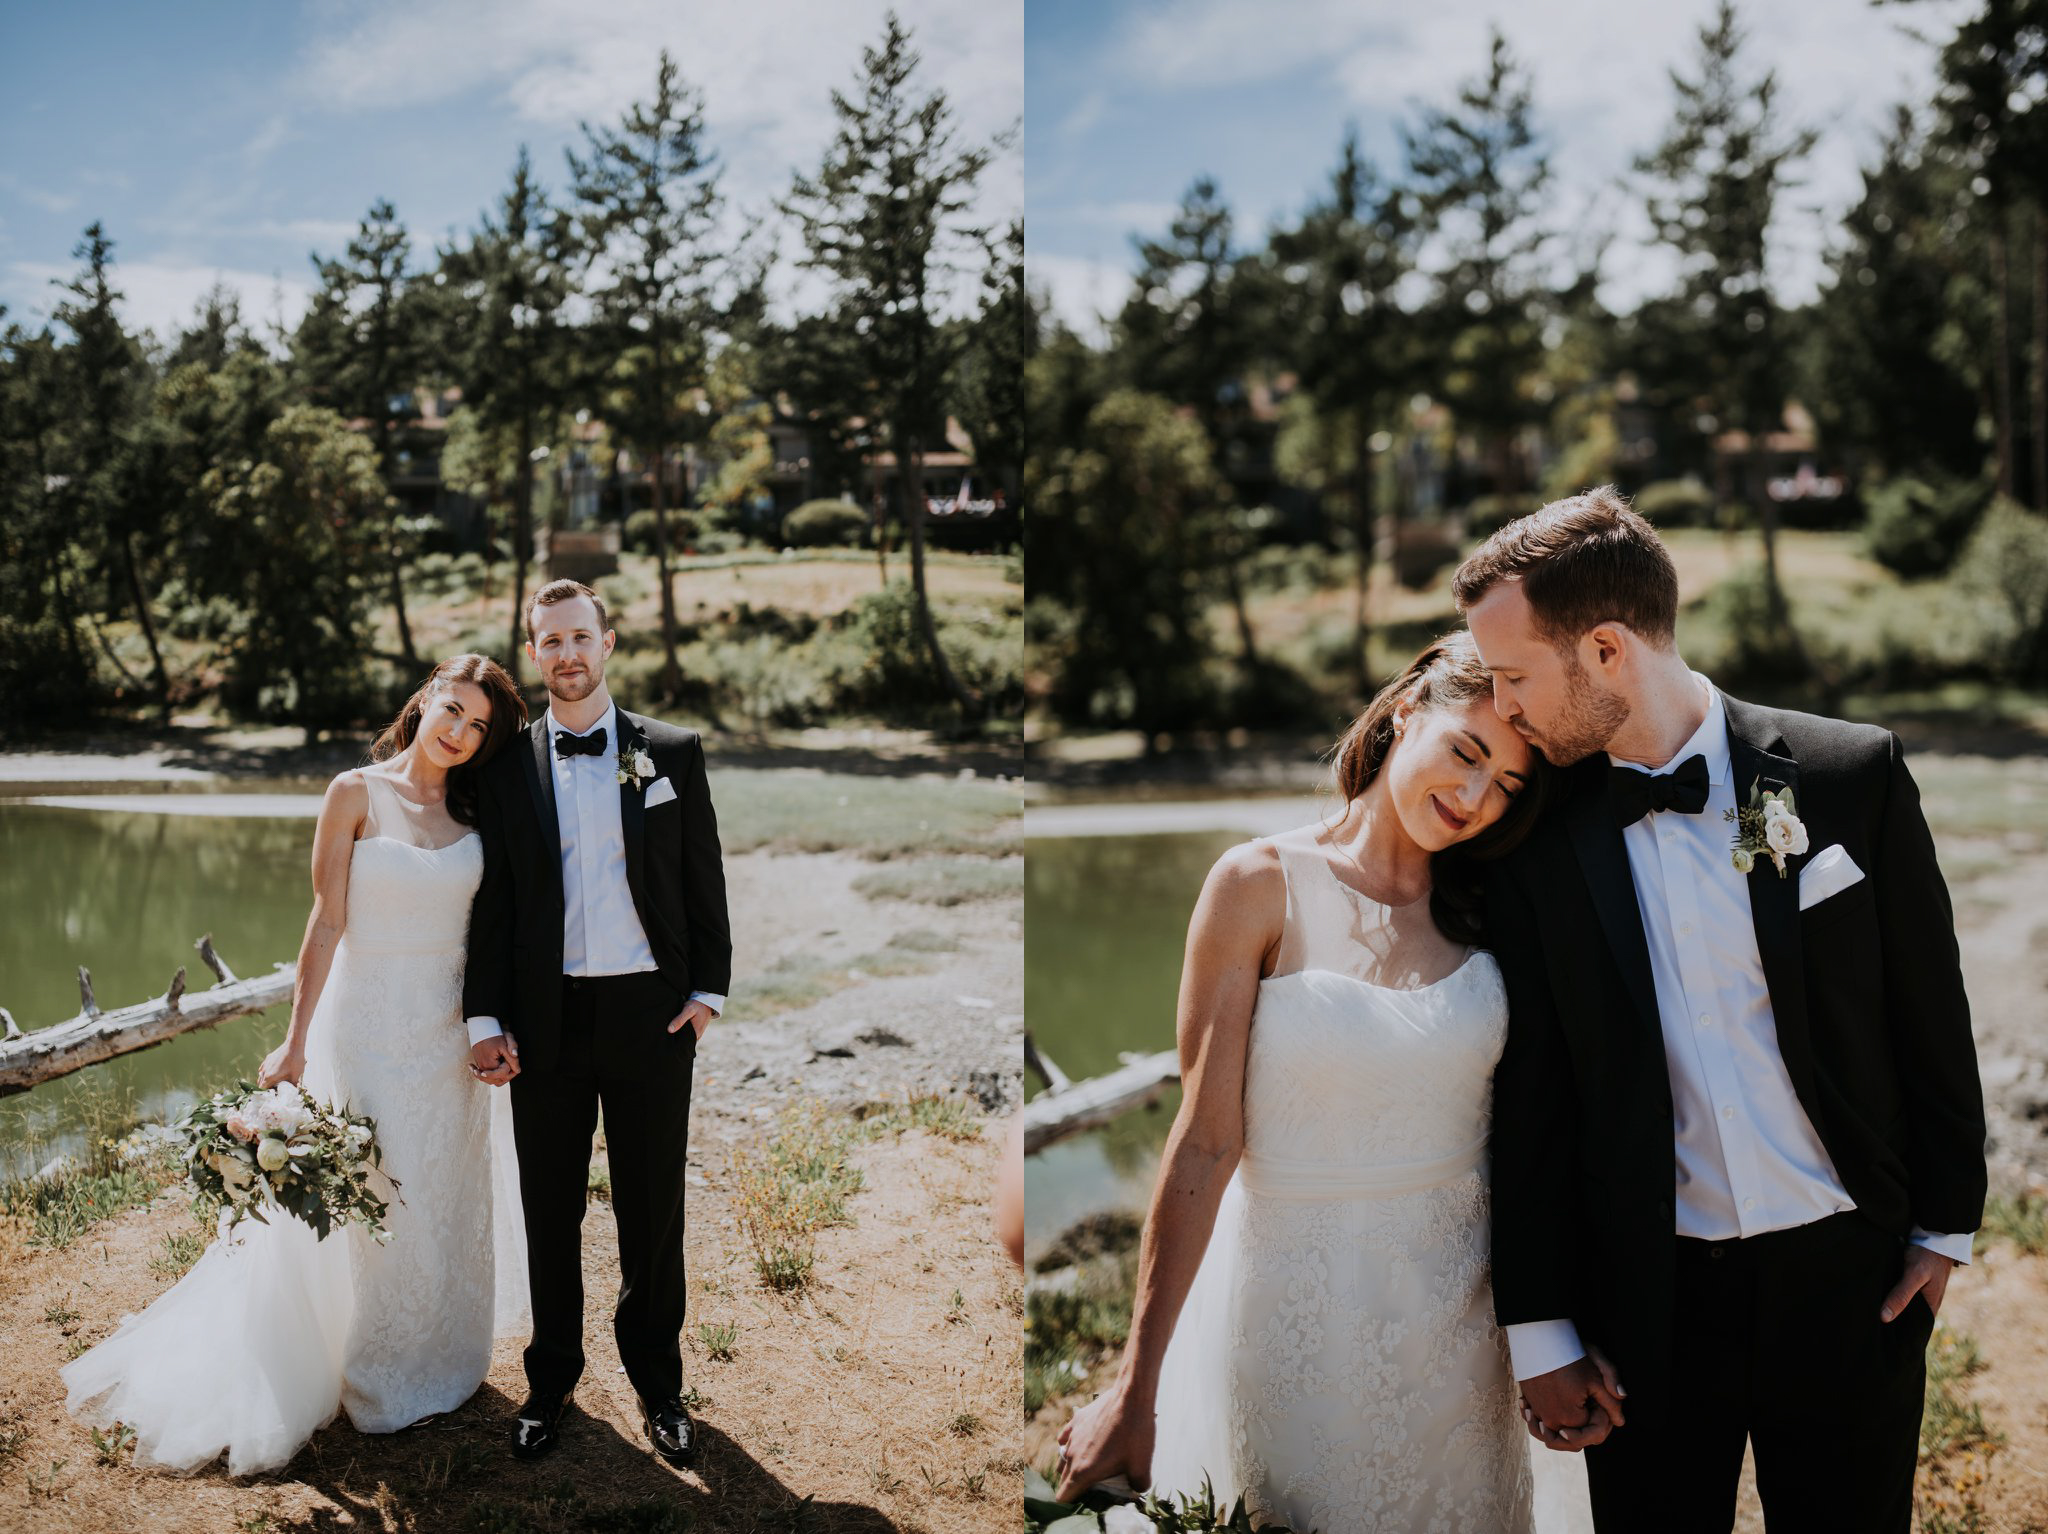 roche-harbor-resort-sand-juan-island-wedding-seattle-wedding-photograher-caitlyn-nikula-77.jpg